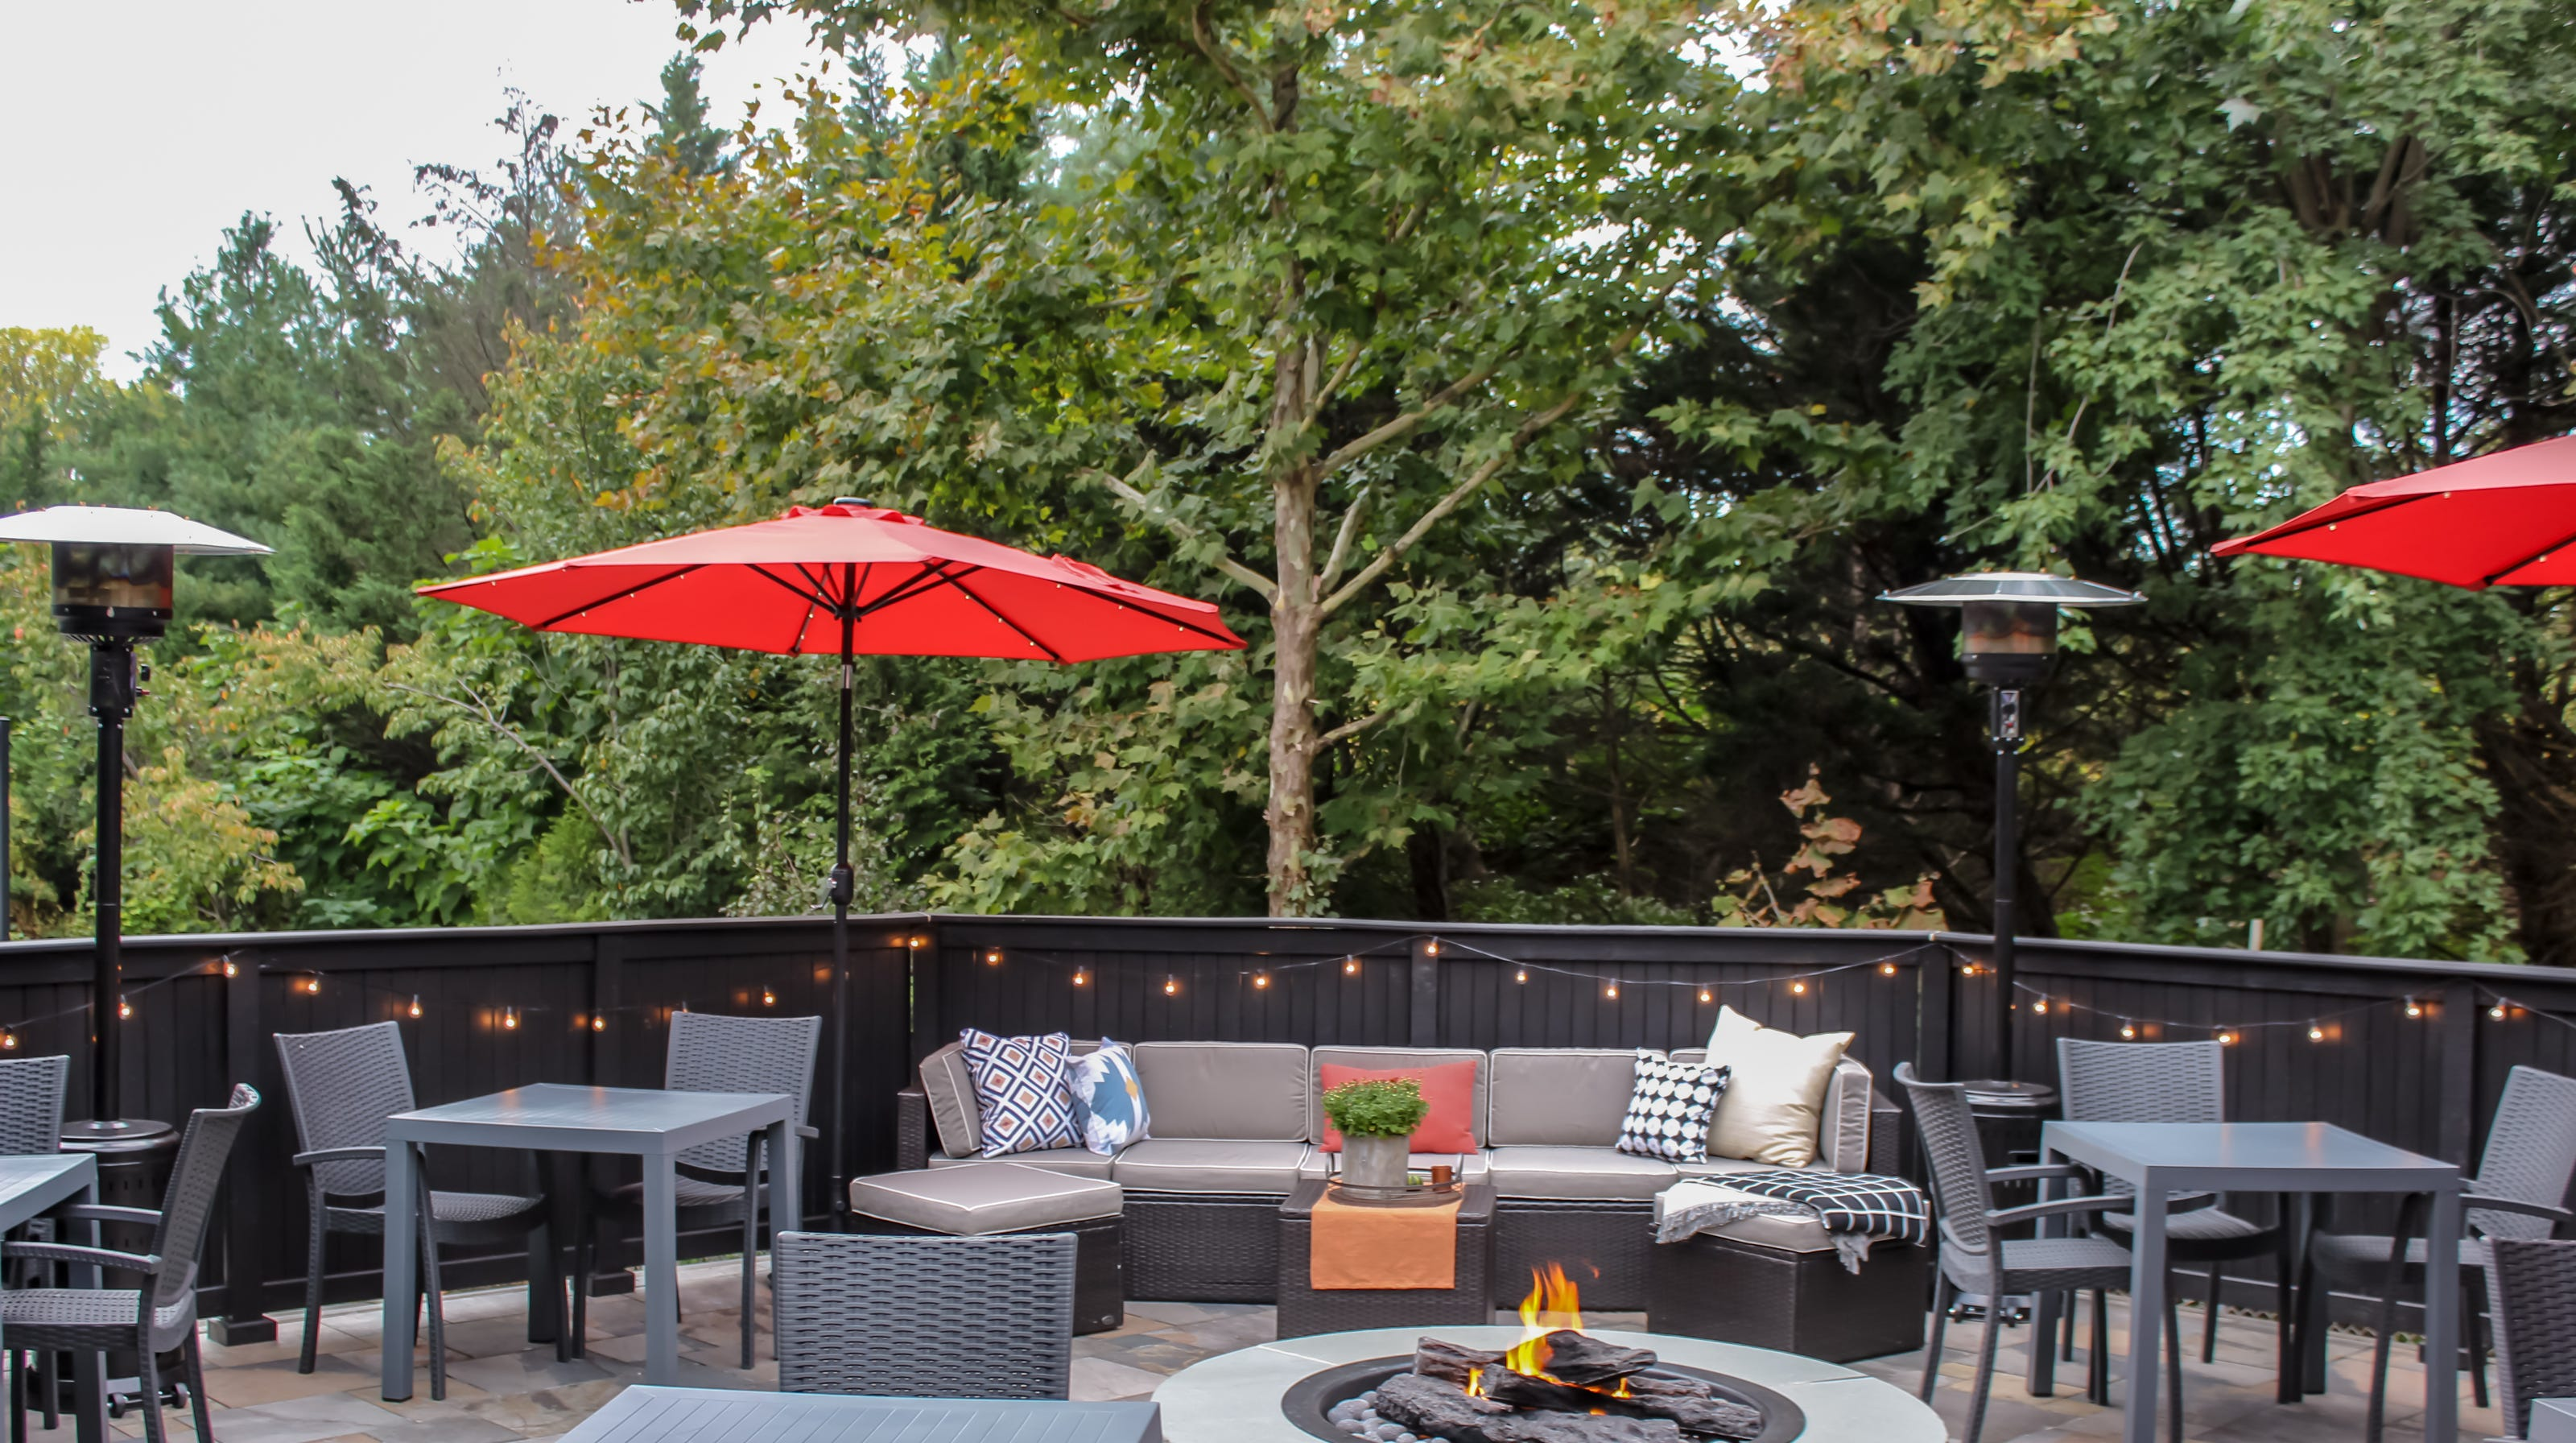 The Best Of Outdoor Dining Outdoor Seating Restaurants In North Jersey